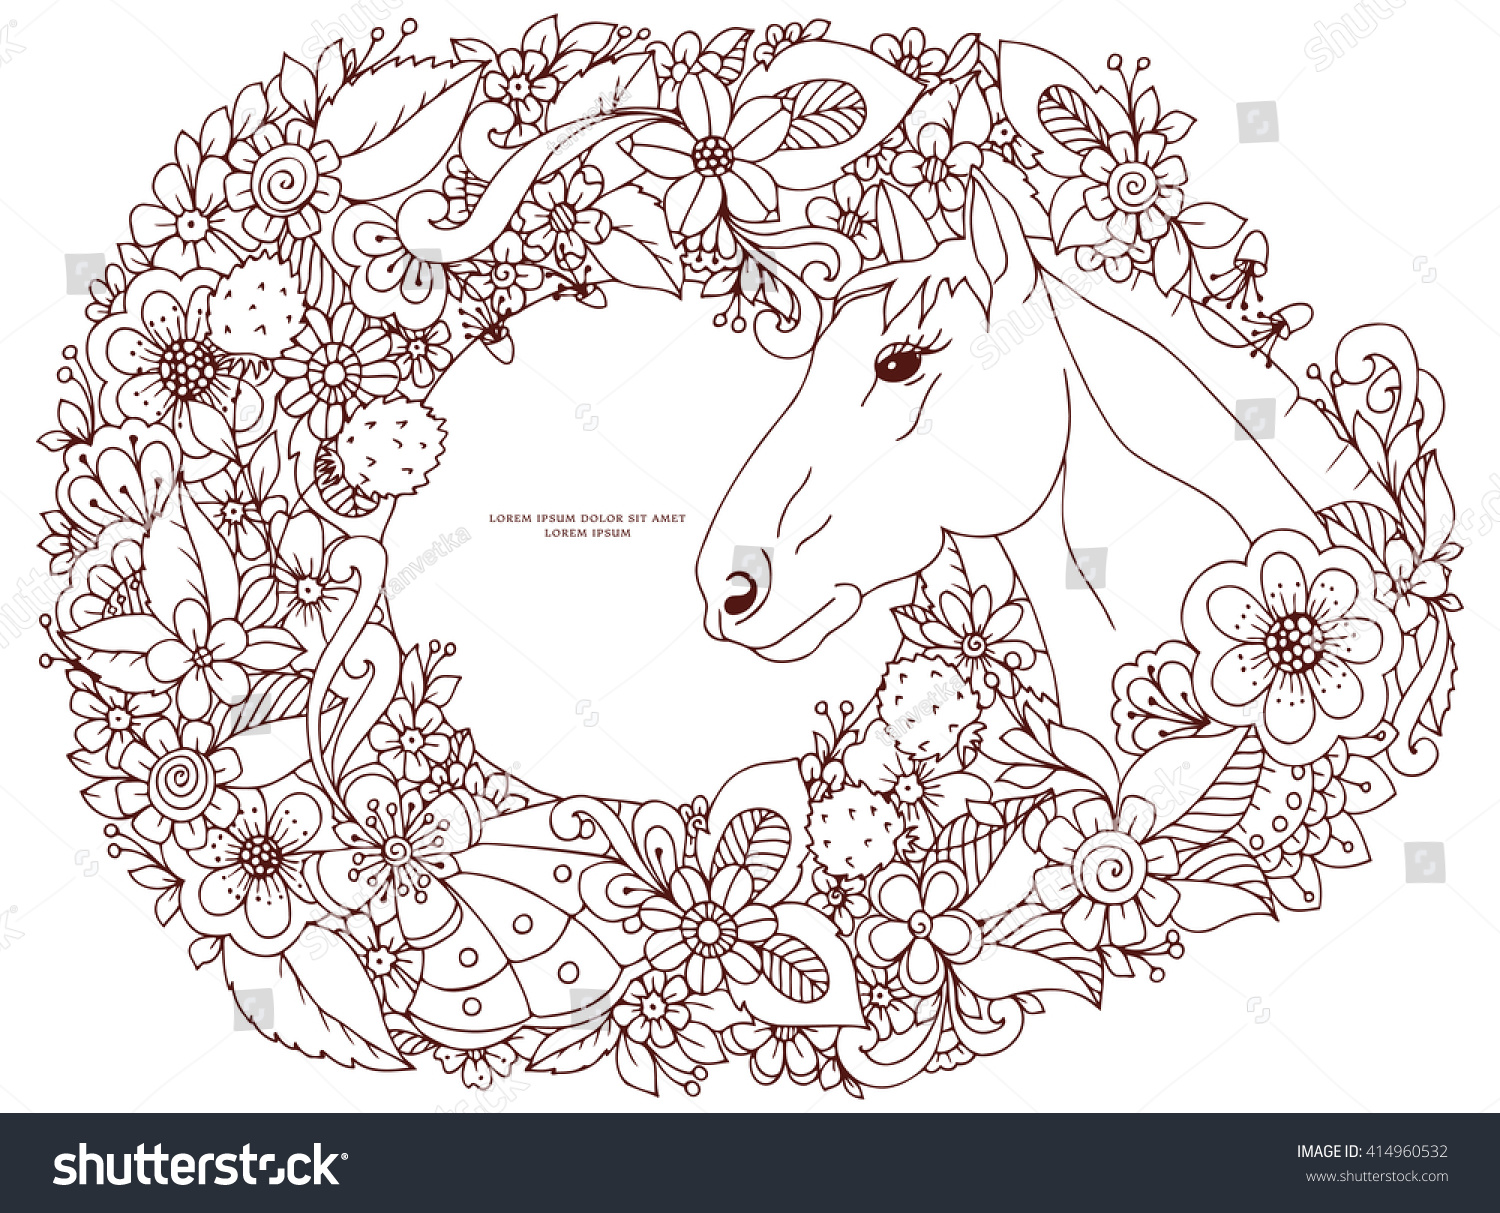 Vector Illustration Zen Tangle Horse In Flower Frame Doodle Animals Coloring Book Anti Stress